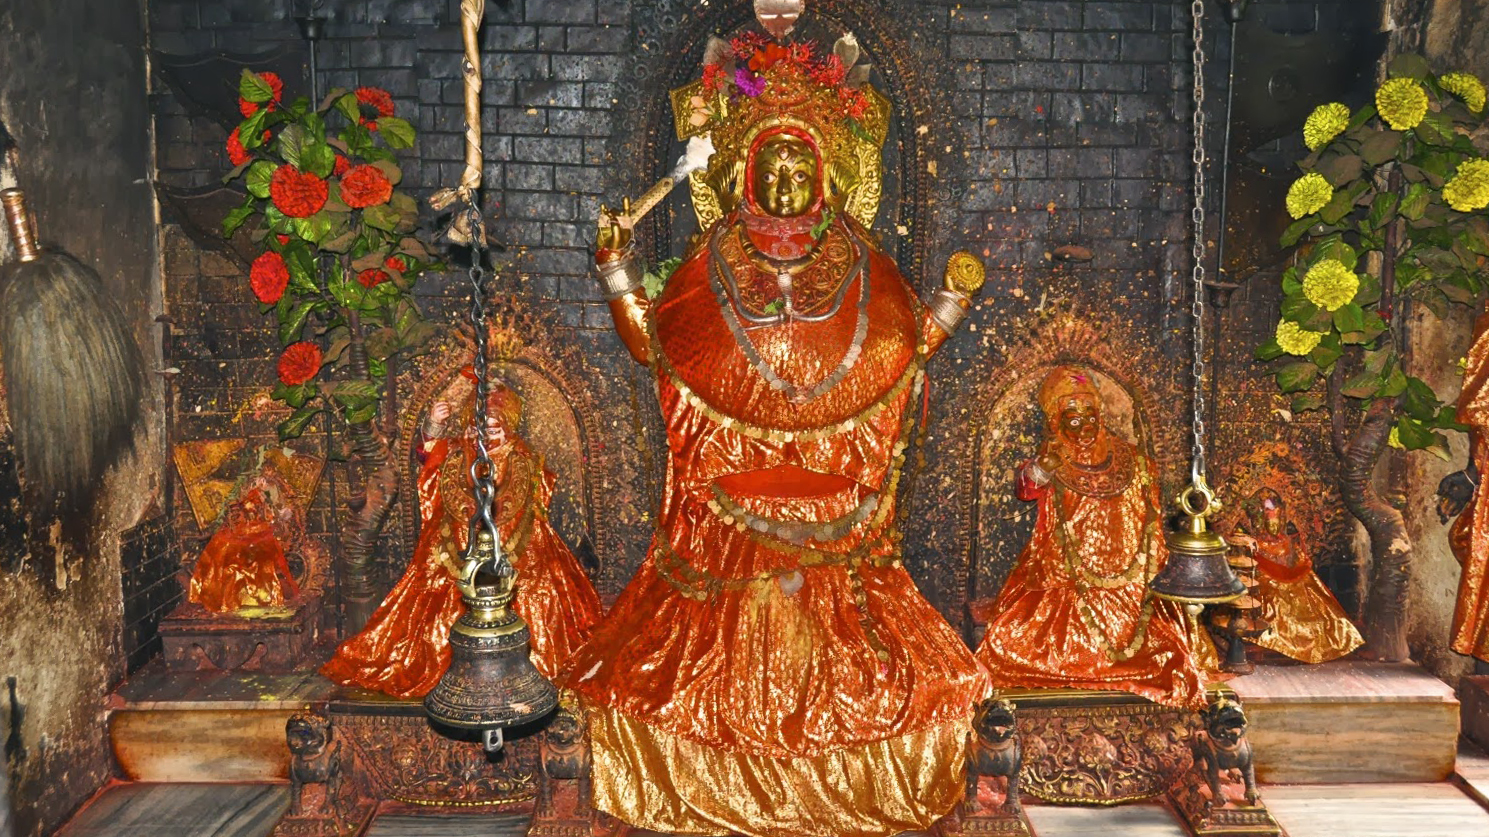 A picture of the Sankhu Vajra Yogini statue that is believed to contain the remains of the great yogini who had become one with Vajra Yogini. Click on image to enlarge.